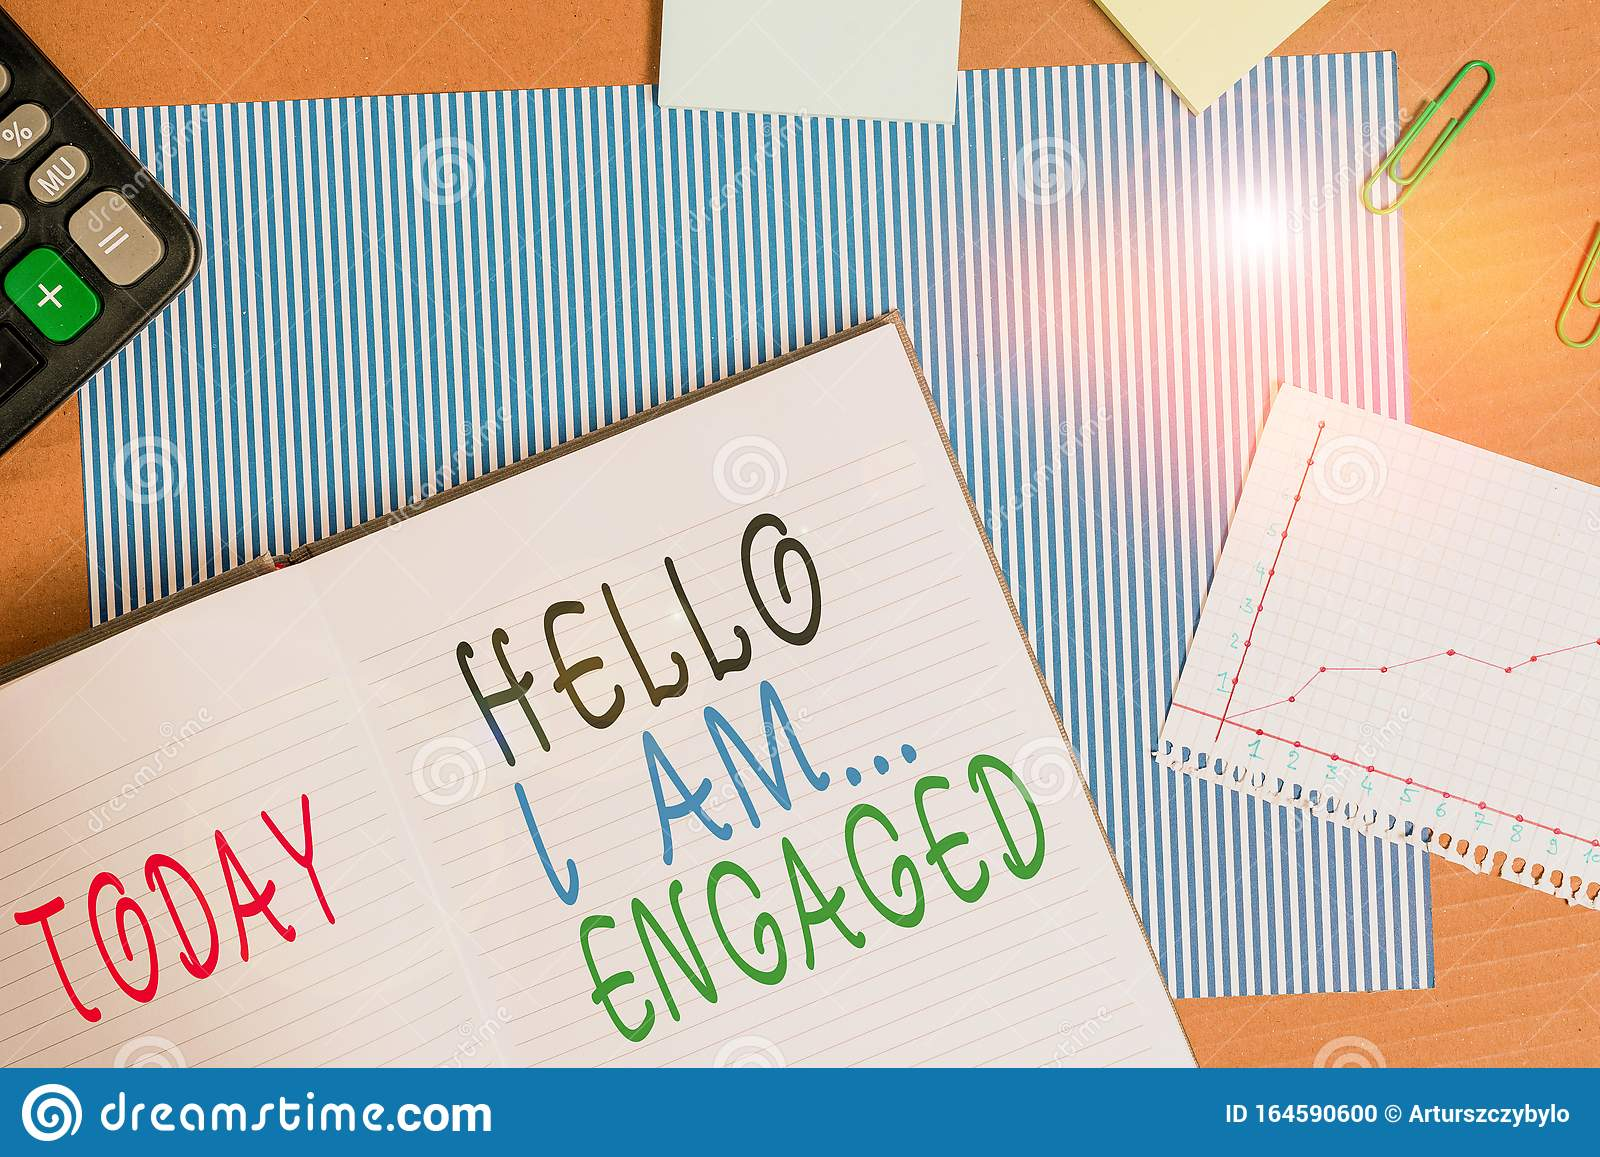 Handwriting Text Writing Hello I Am Engaged Concept Meaning He Gave The Ring We Are Going To Get Married Wedding Stock Photo Image Of Pleasant Married 164590600   i'm sure he wouldn't mind. dreamstime com